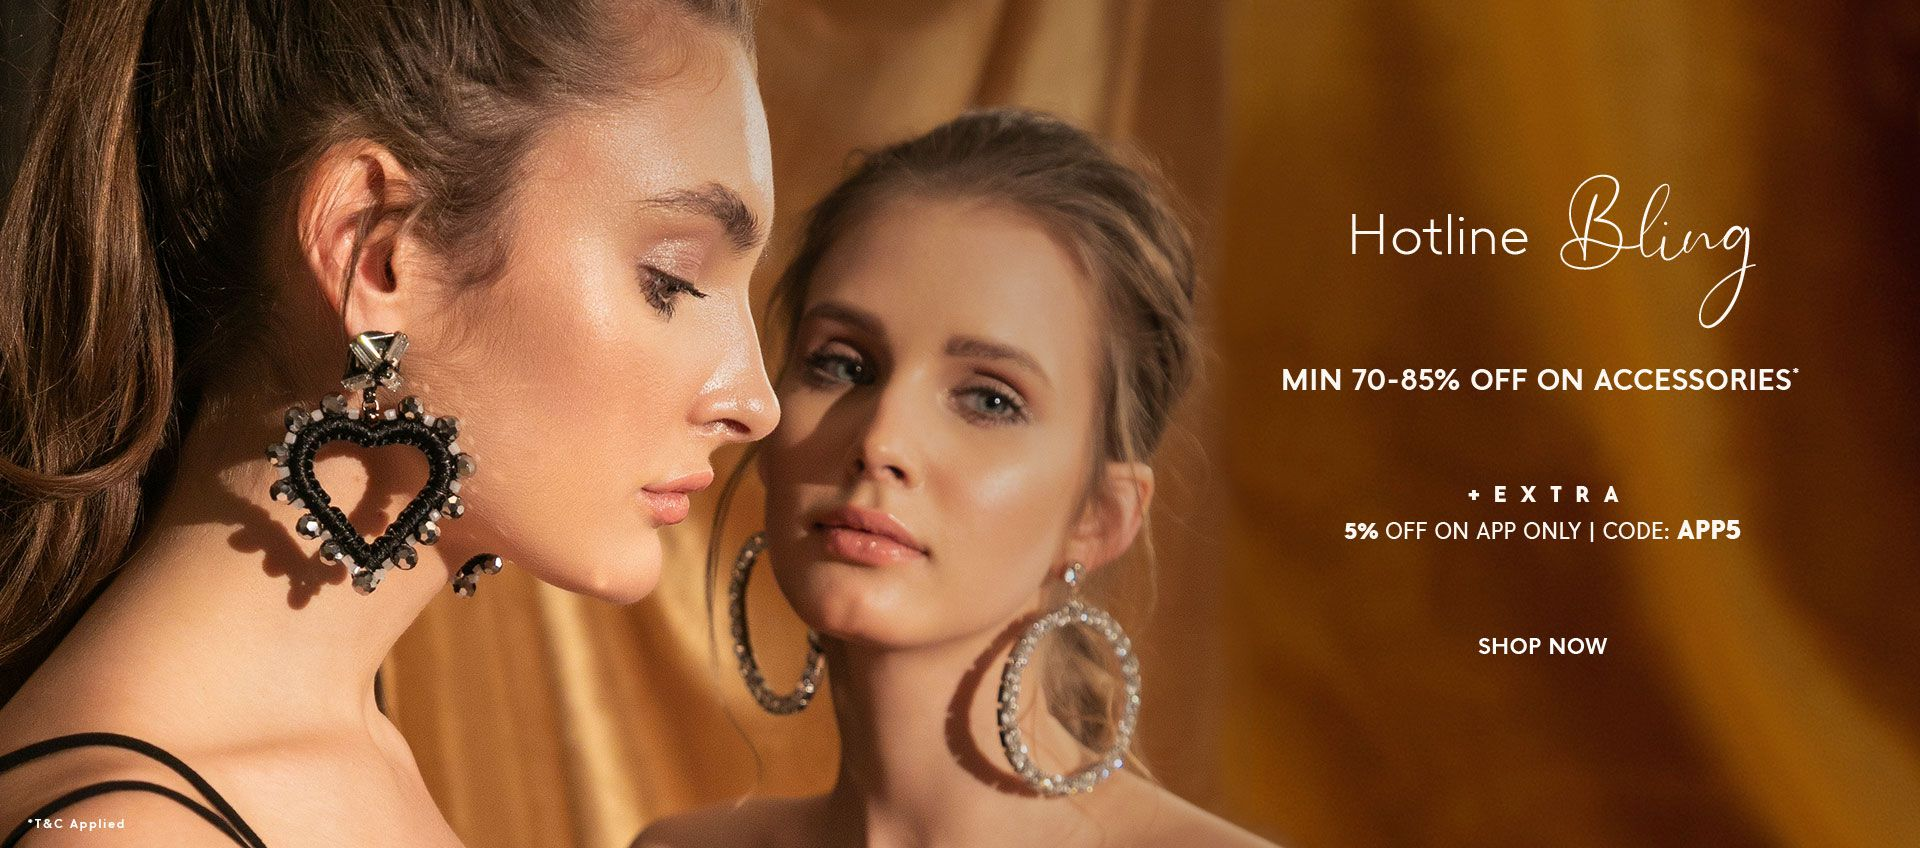 MIN 70-85% OFF ON ACCESSORIES